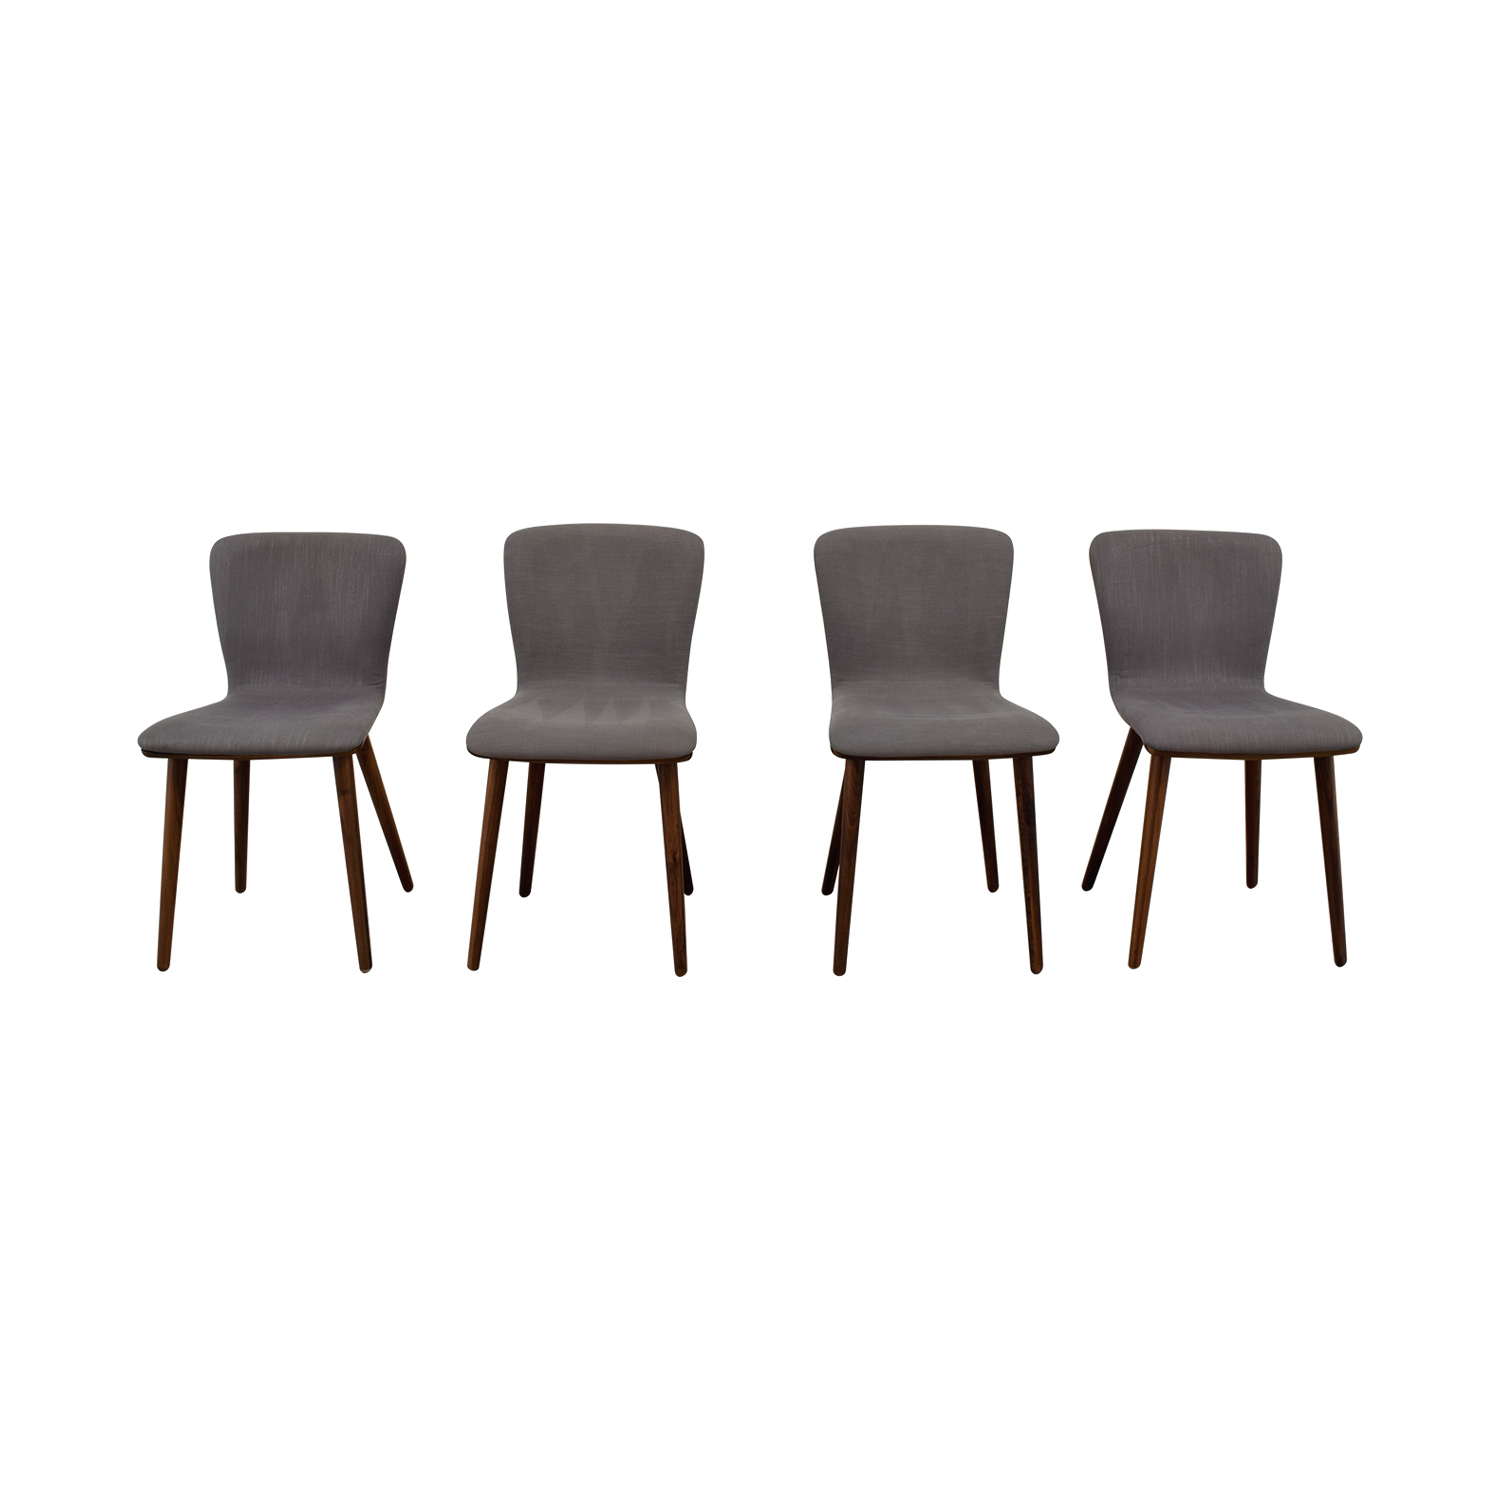 Article Article Sede Thunder Gray Walnut Dining Chairs nyc